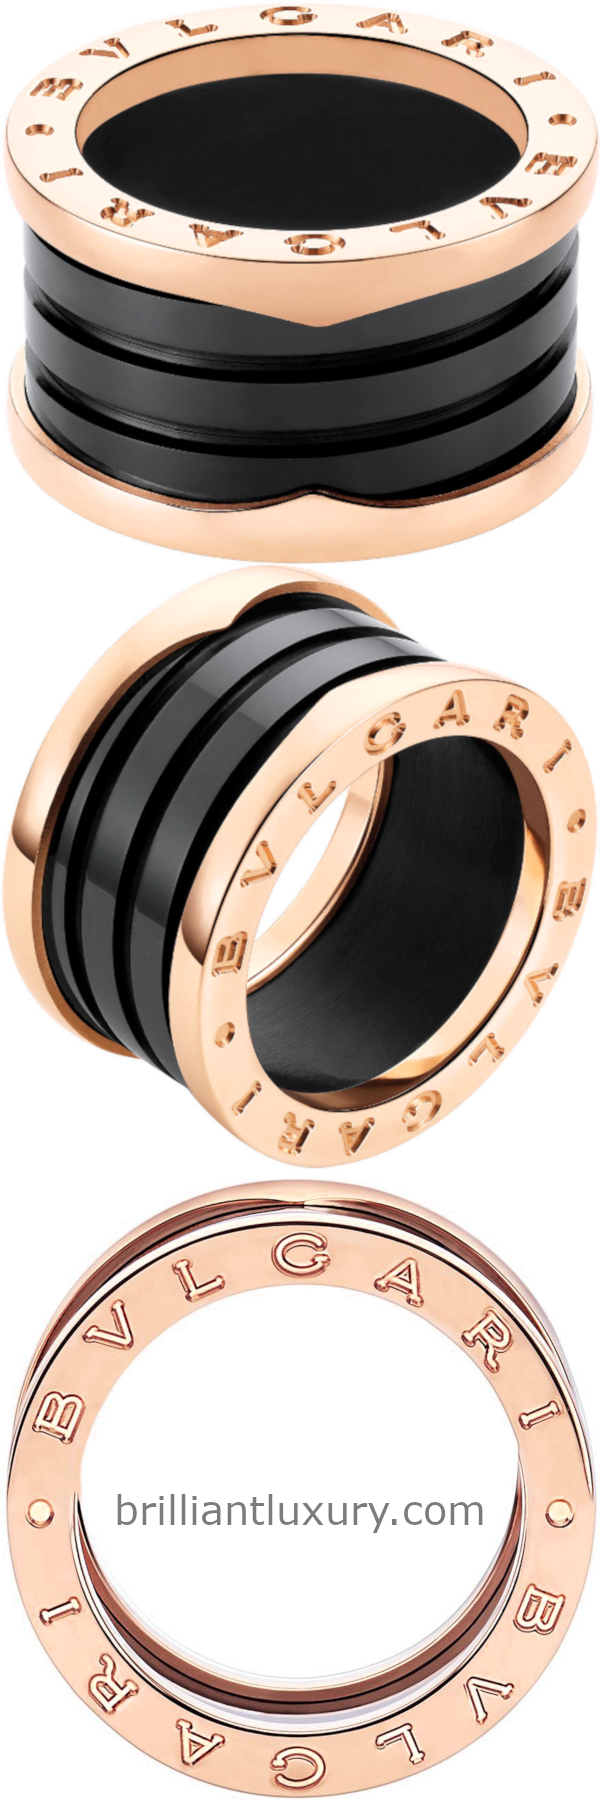 Bvlgari B.Zero1 four-band ring with two 18kt rose gold loops and a black ceramic spiral